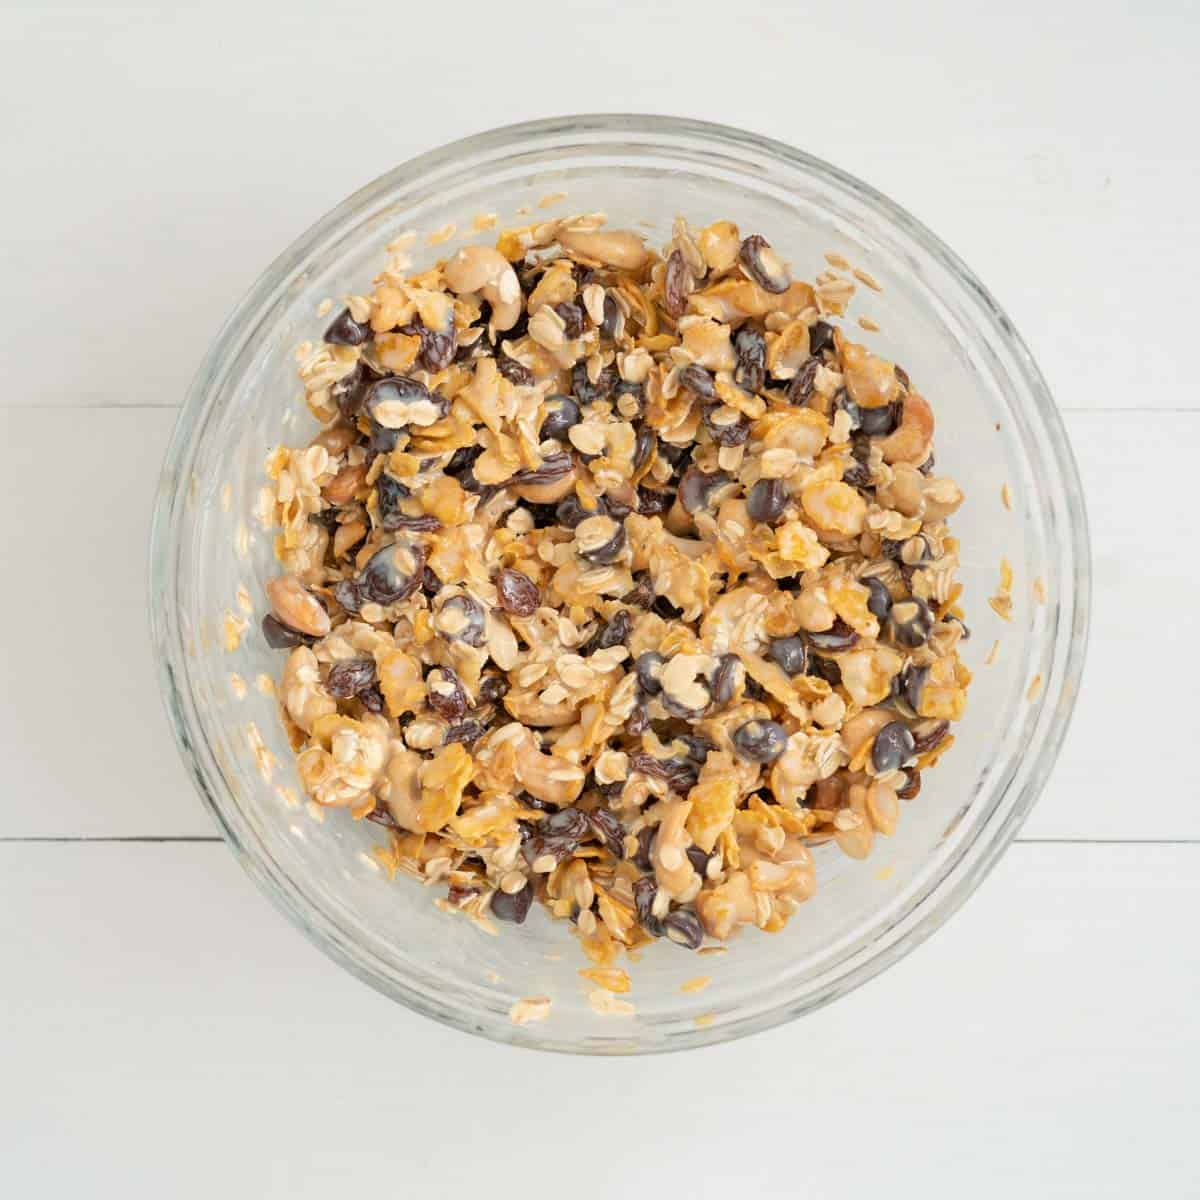 Cereal, nuts, dried fruits and chocolate drops mixed together in a bowl